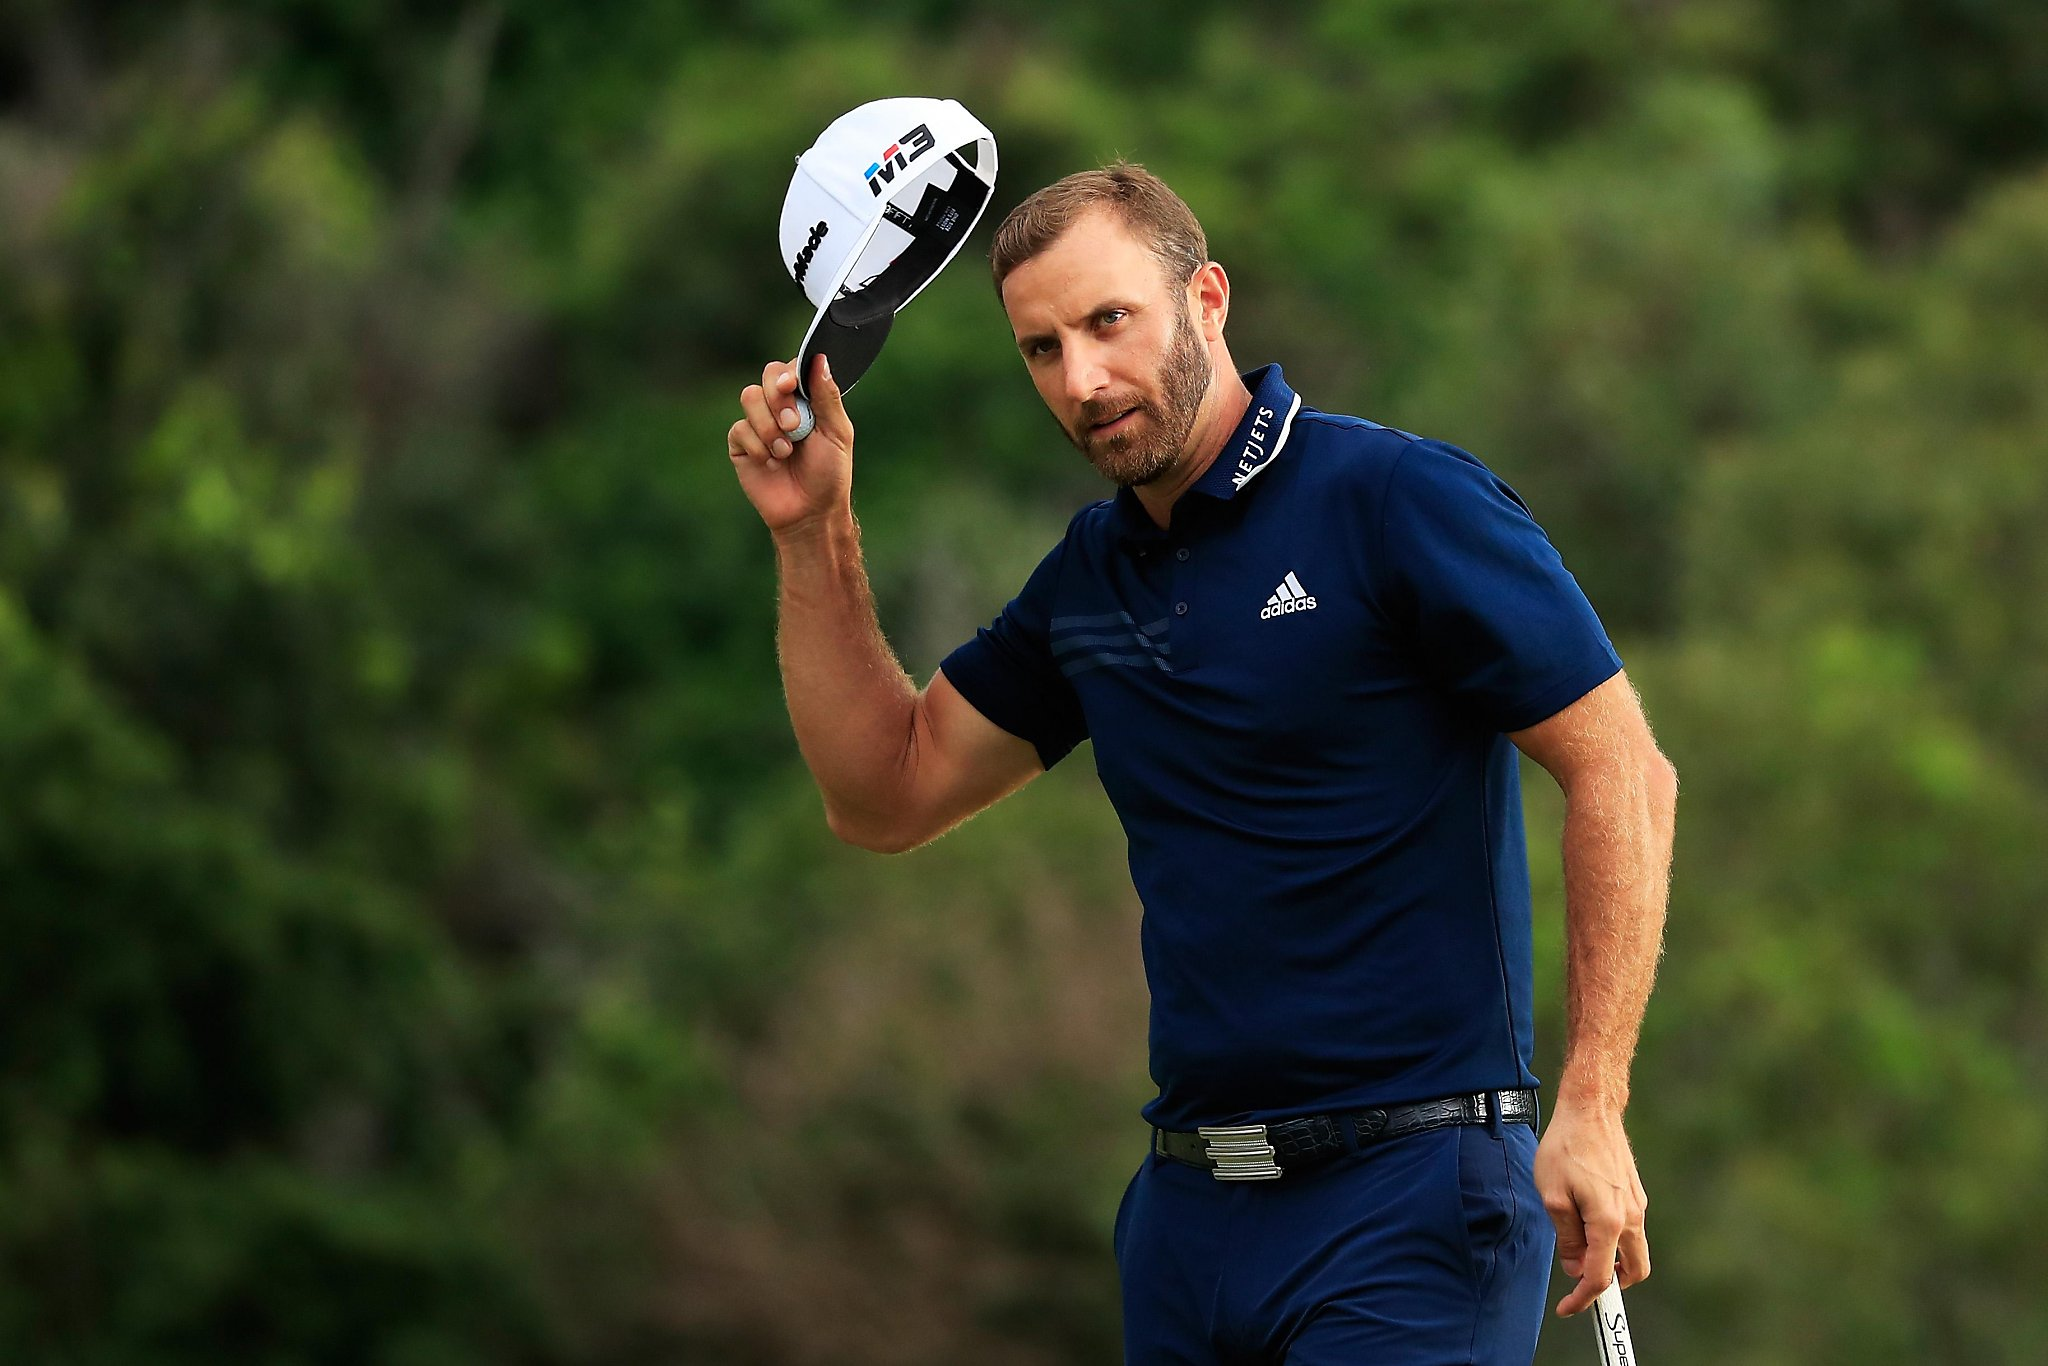 Dustin Johnson With The Best Shot Ever Brandel Chamblee Swings And Misses San Francisco Chronicle